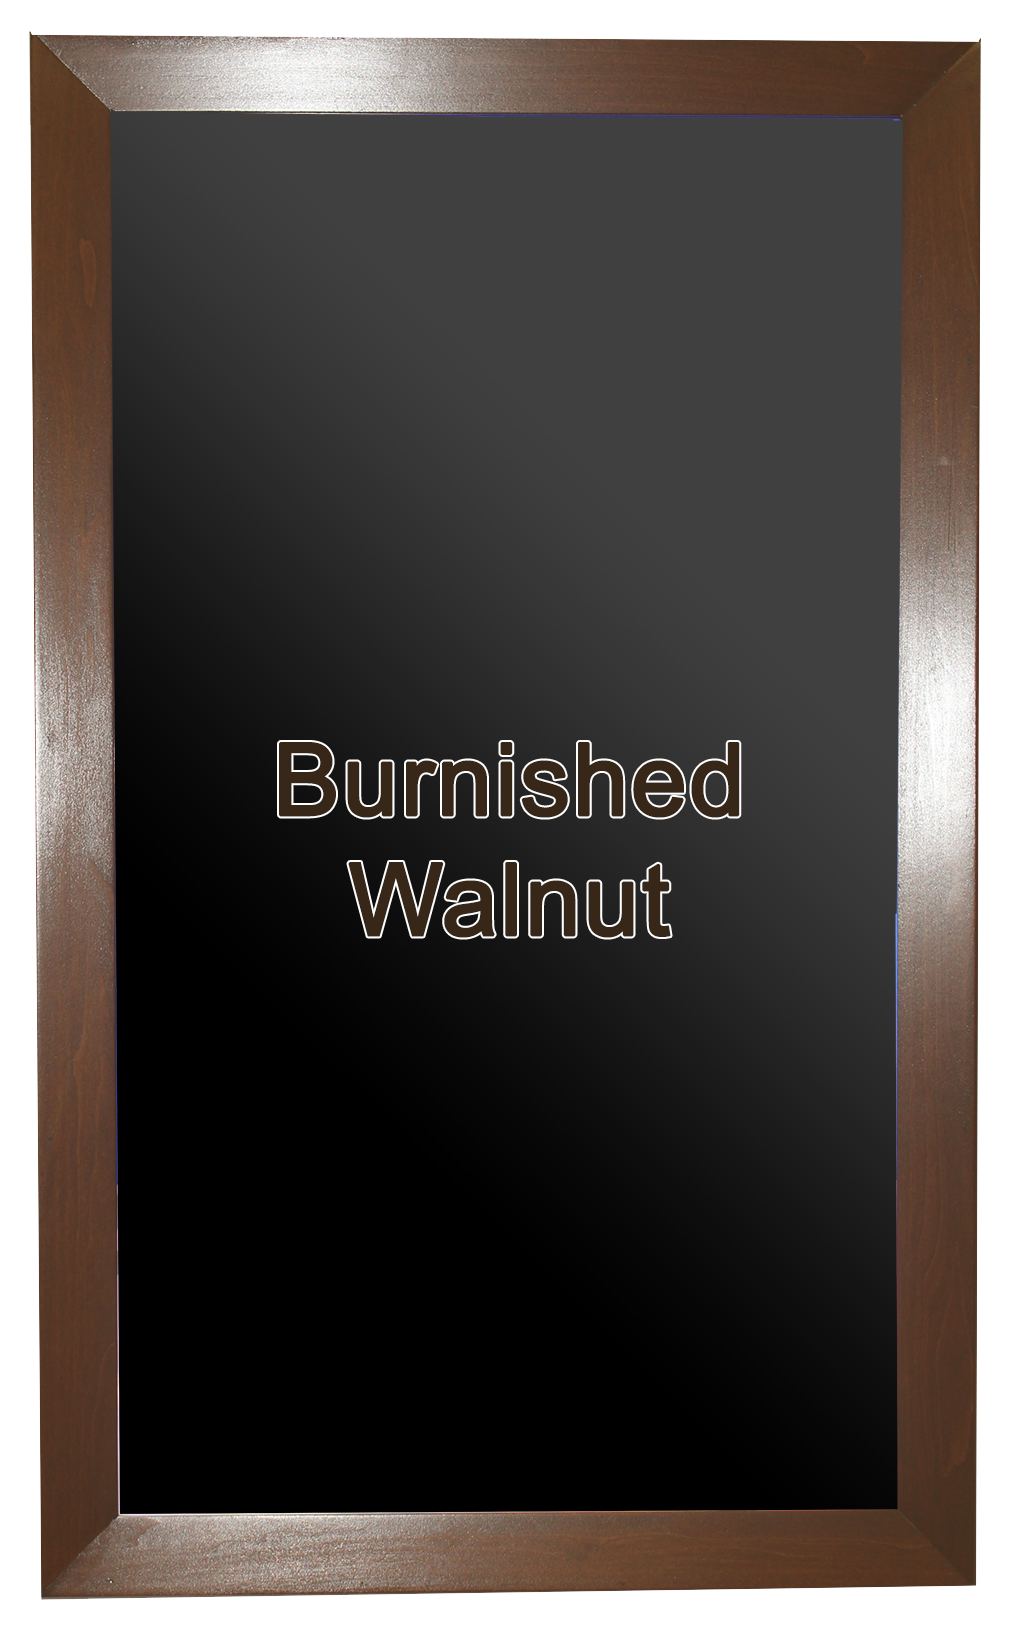 Burnished Walnut